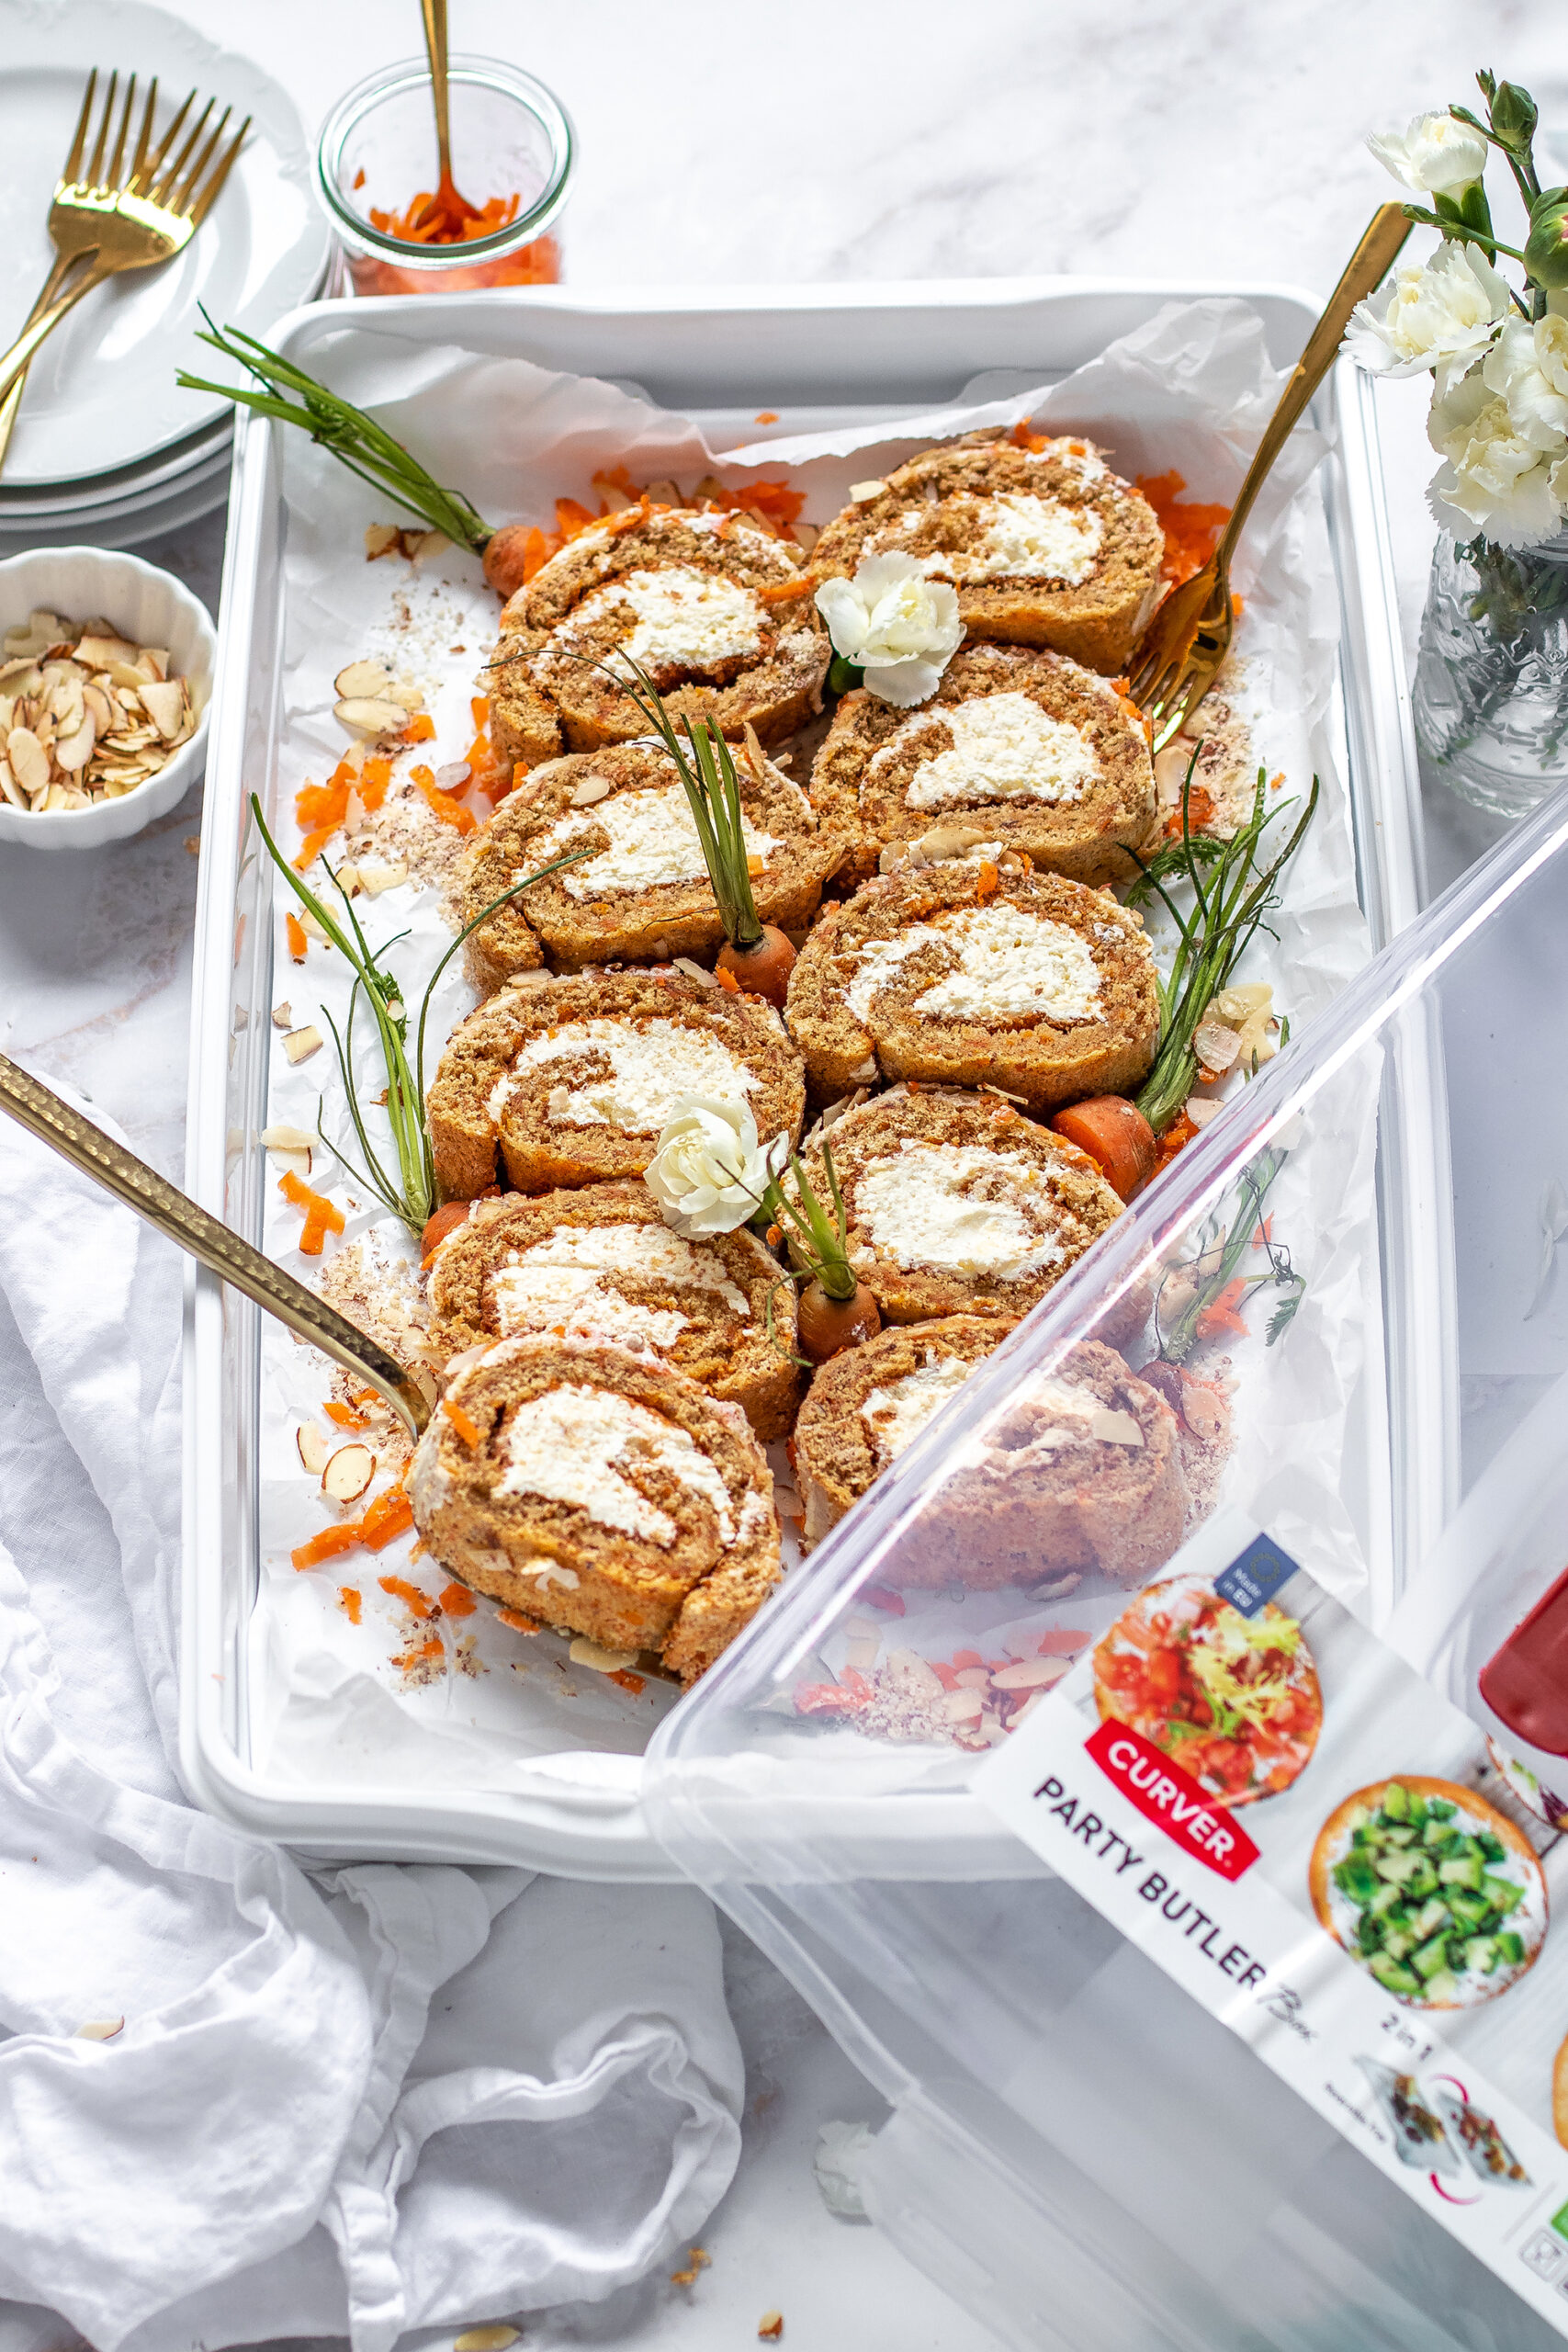 Carrot Cake Biskuitrolle mit Frosting